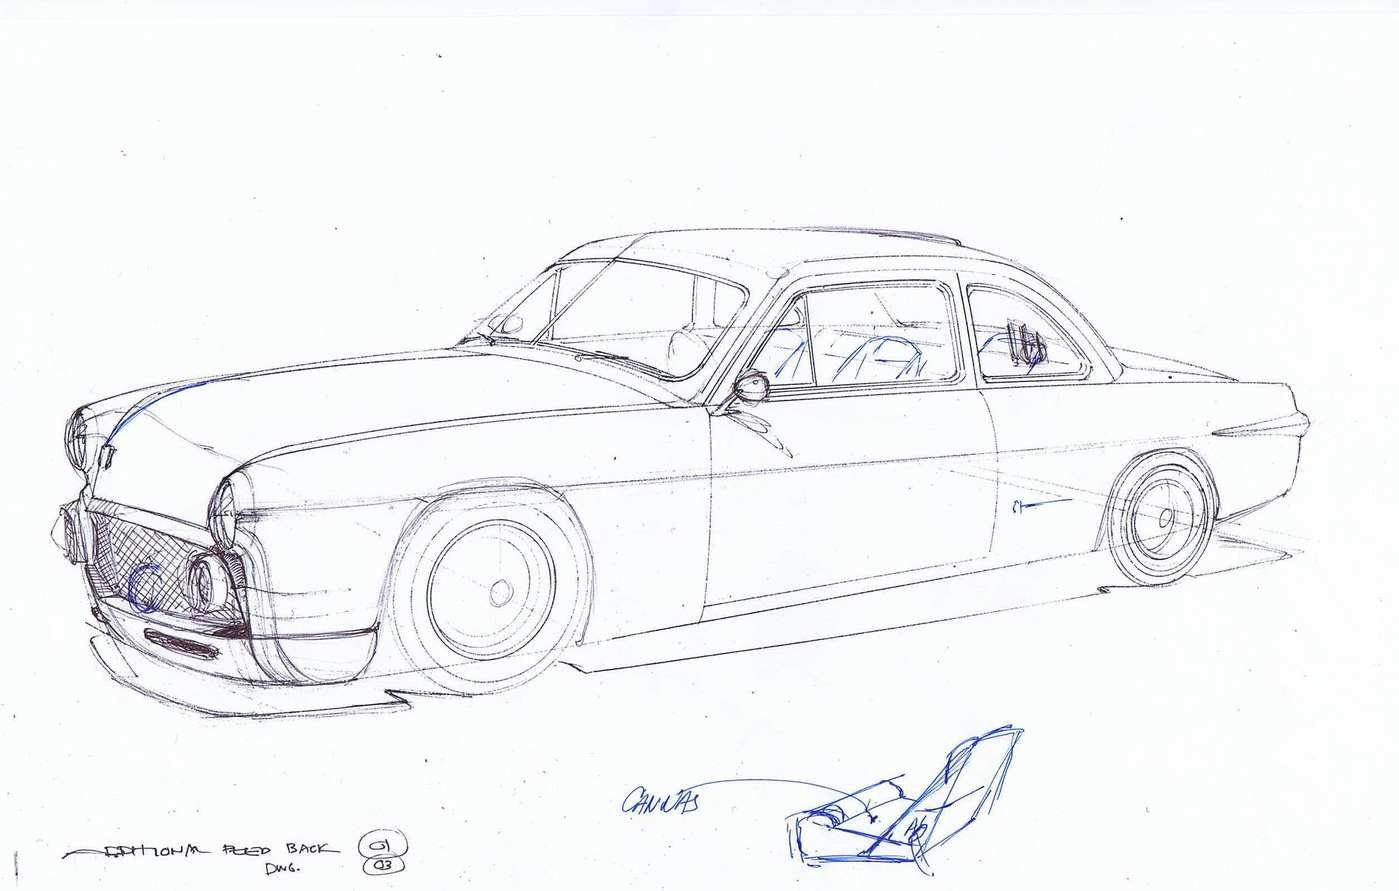 2011 - 2016 Bruce Leven '51 Ford Concept Drawings by Alberto